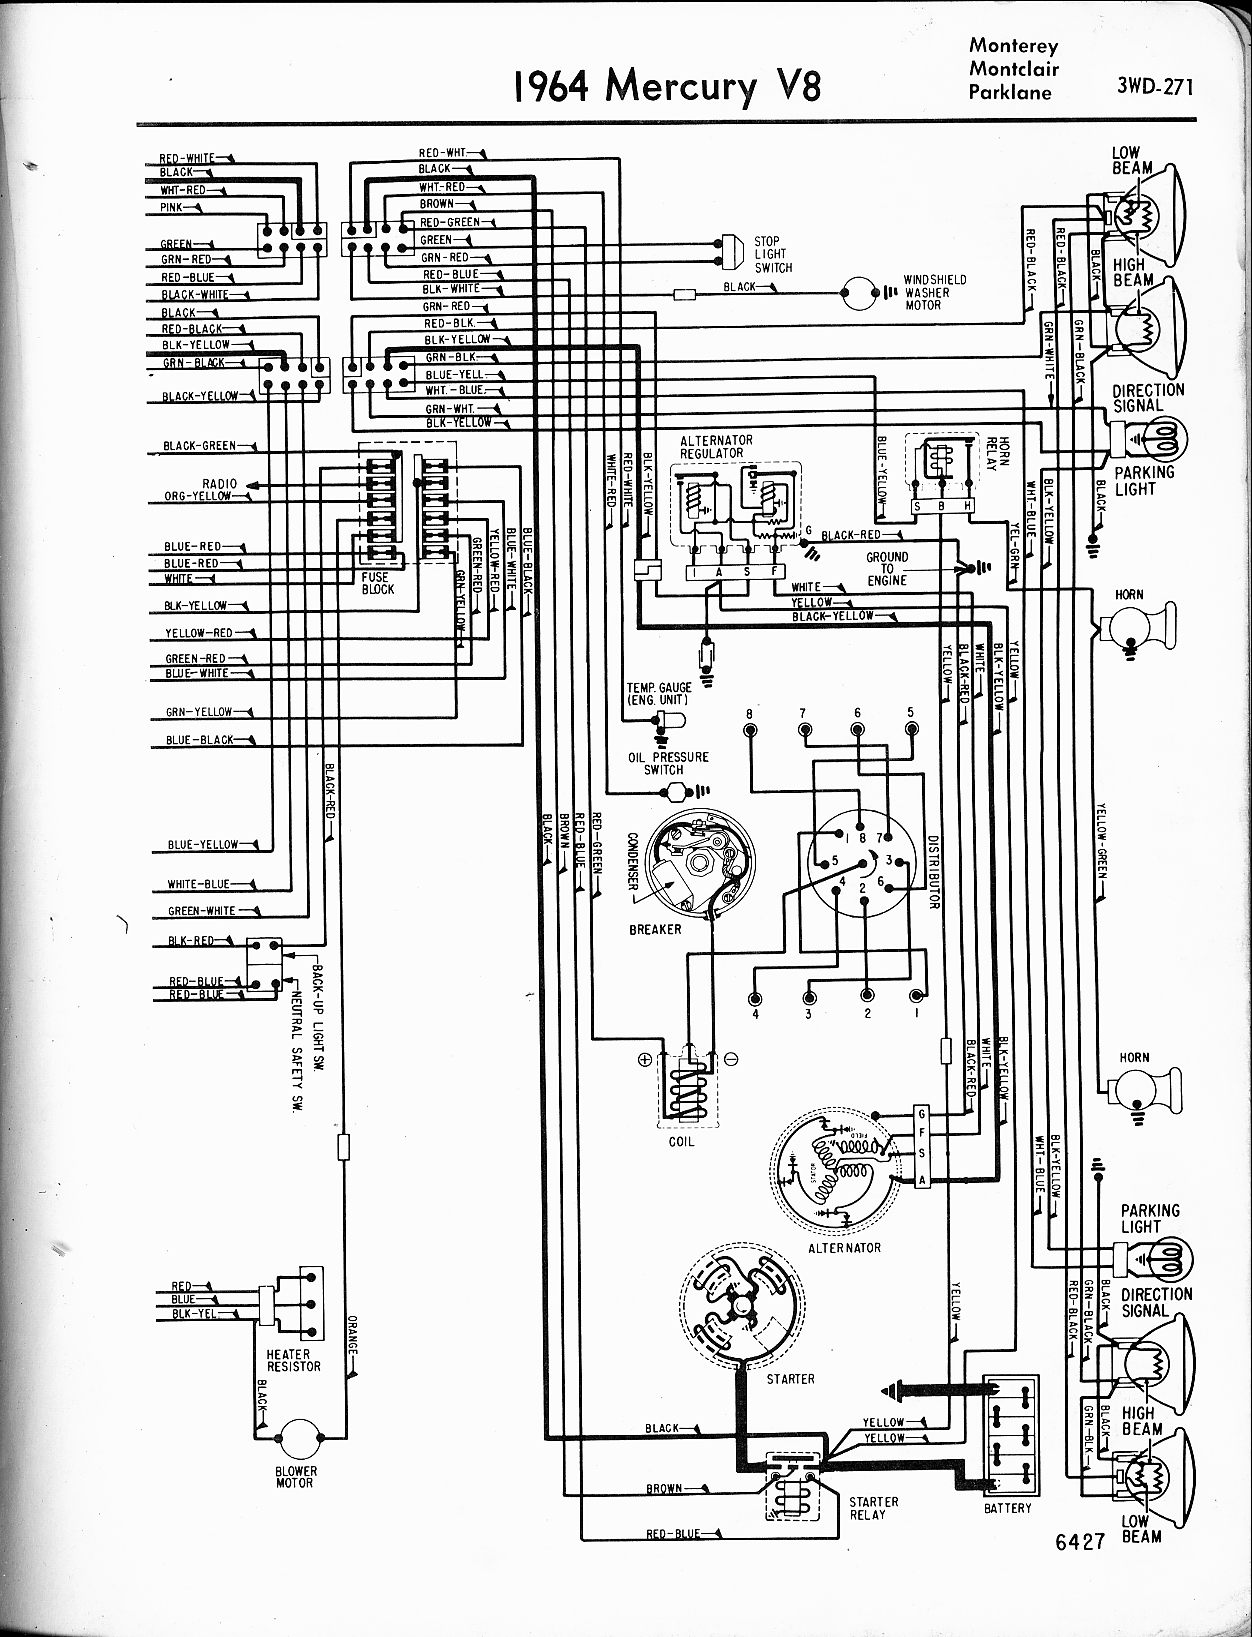 MWire5765 271 mercury wiring diagrams the old car manual project 1963 mercury comet wiring diagram at fashall.co